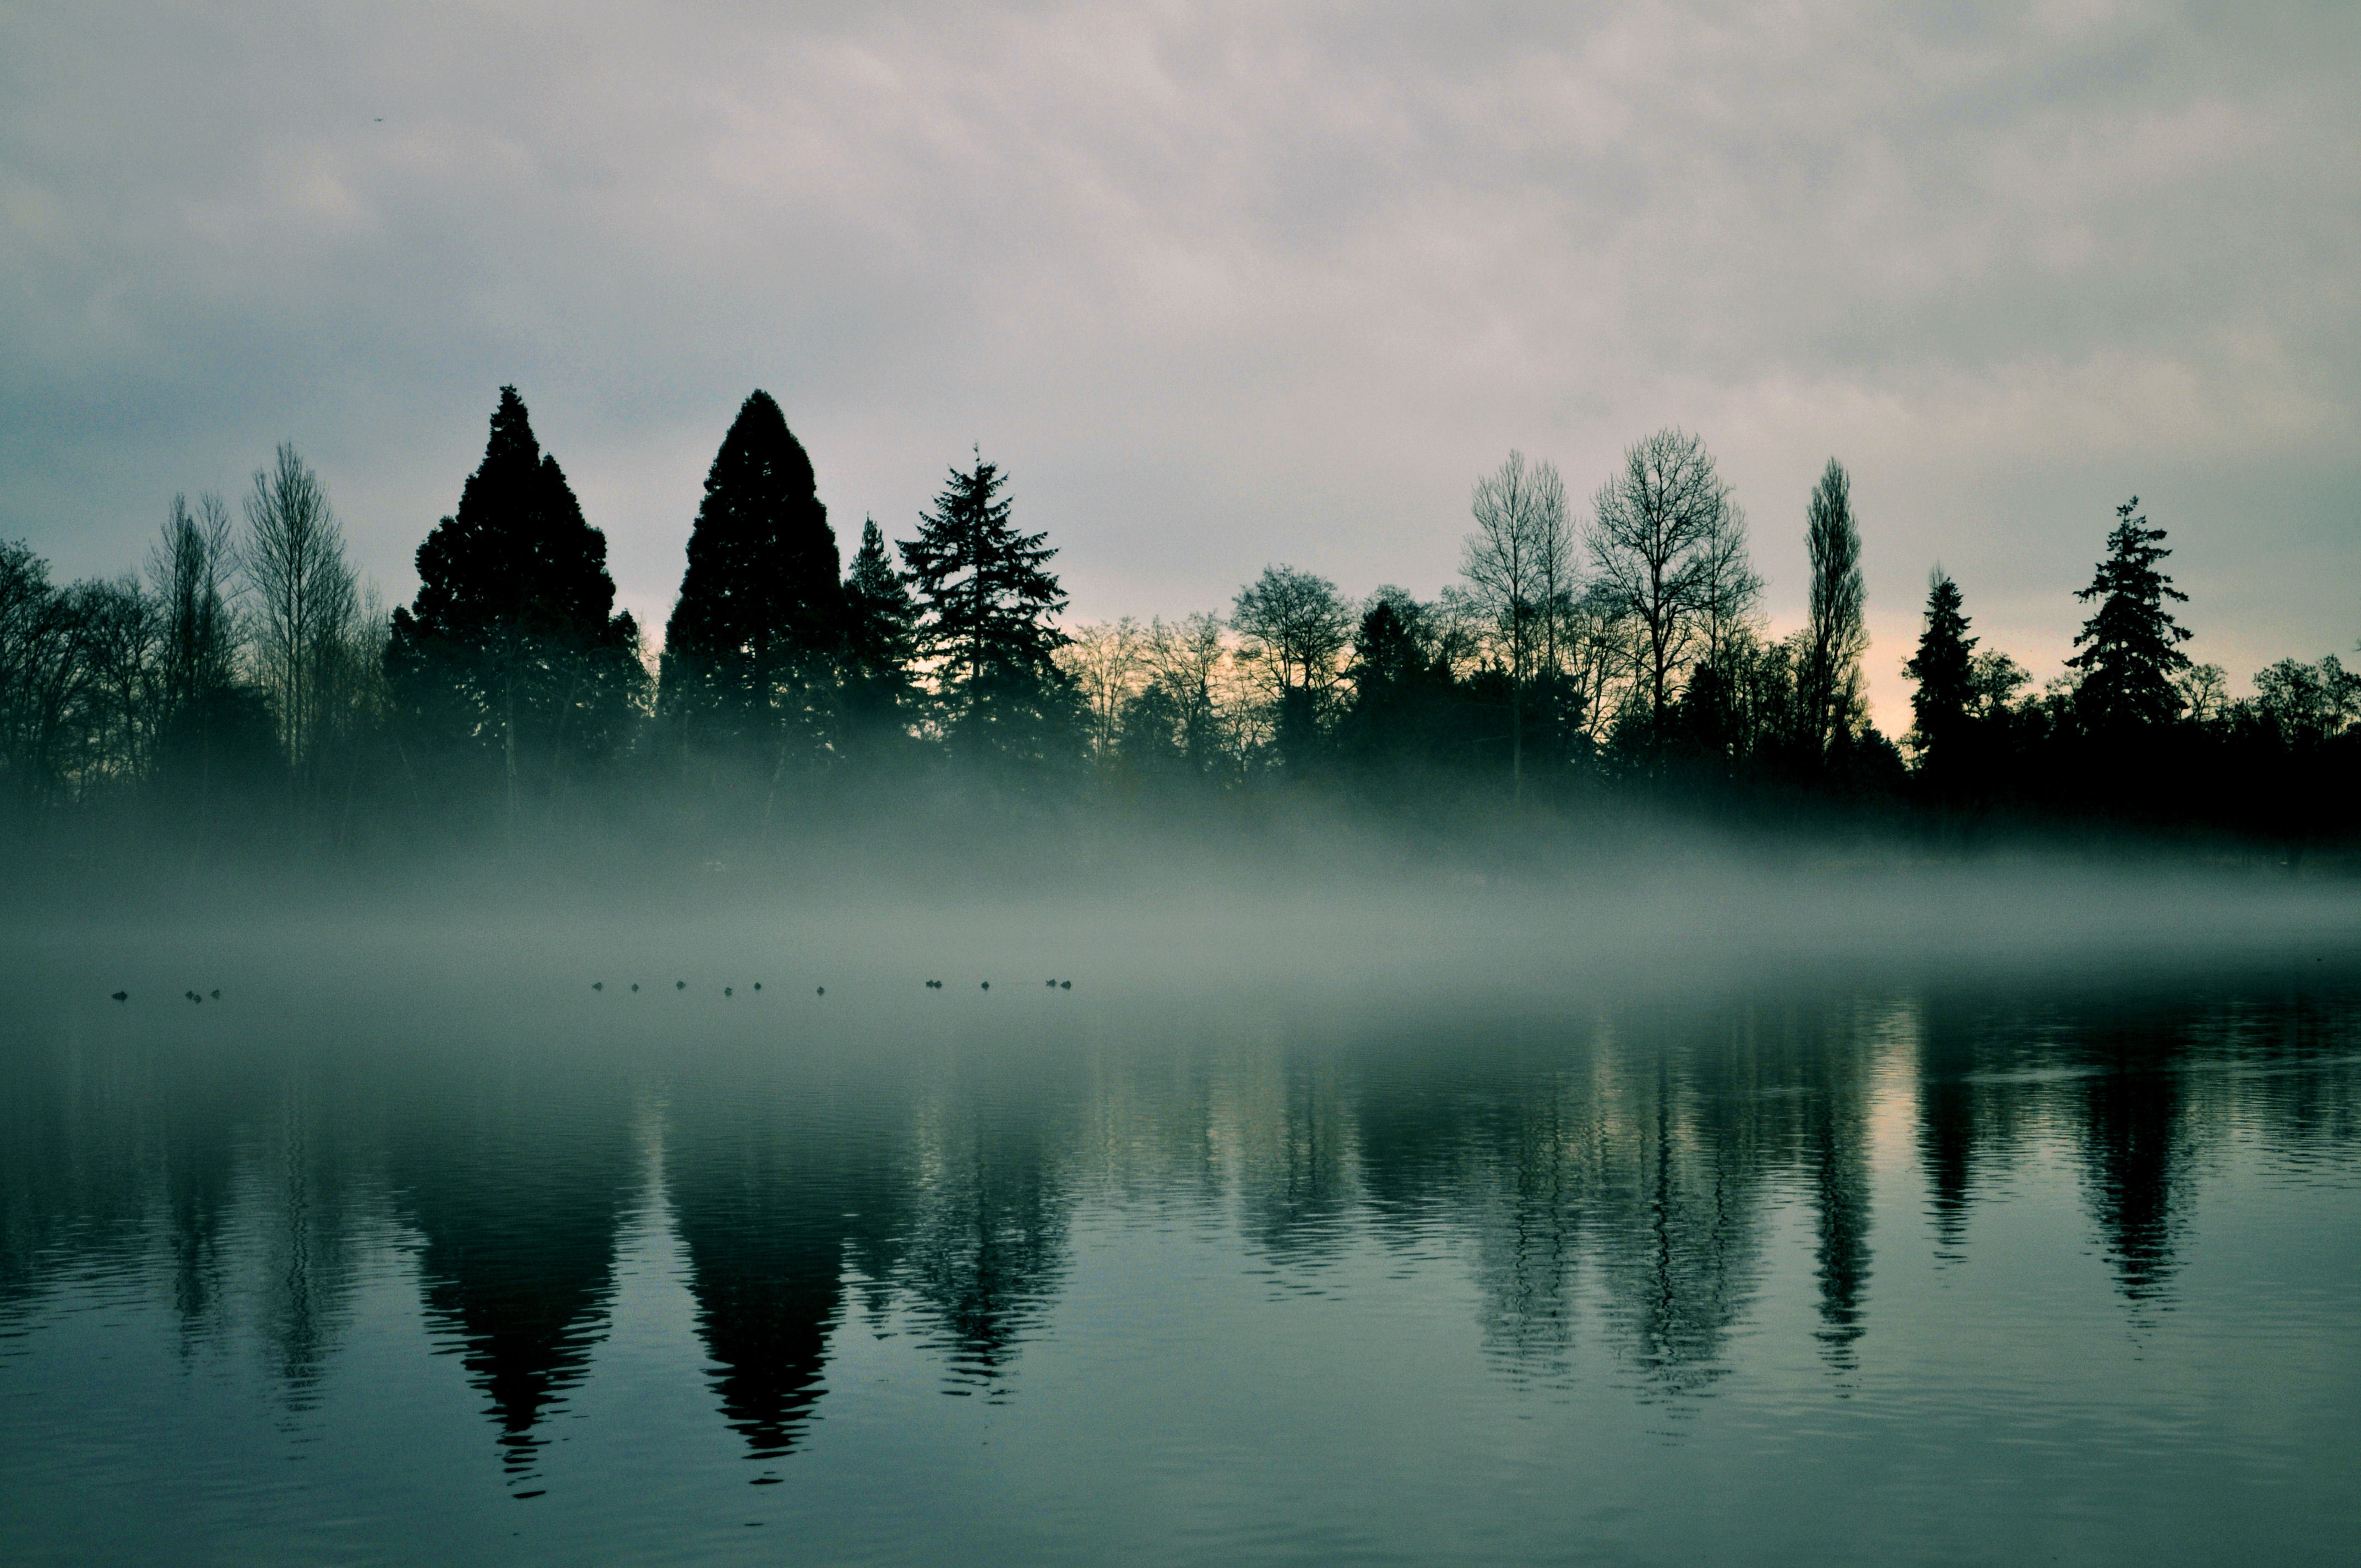 152198 download wallpaper Nature, Rivers, Trees, Reflection, Fog screensavers and pictures for free